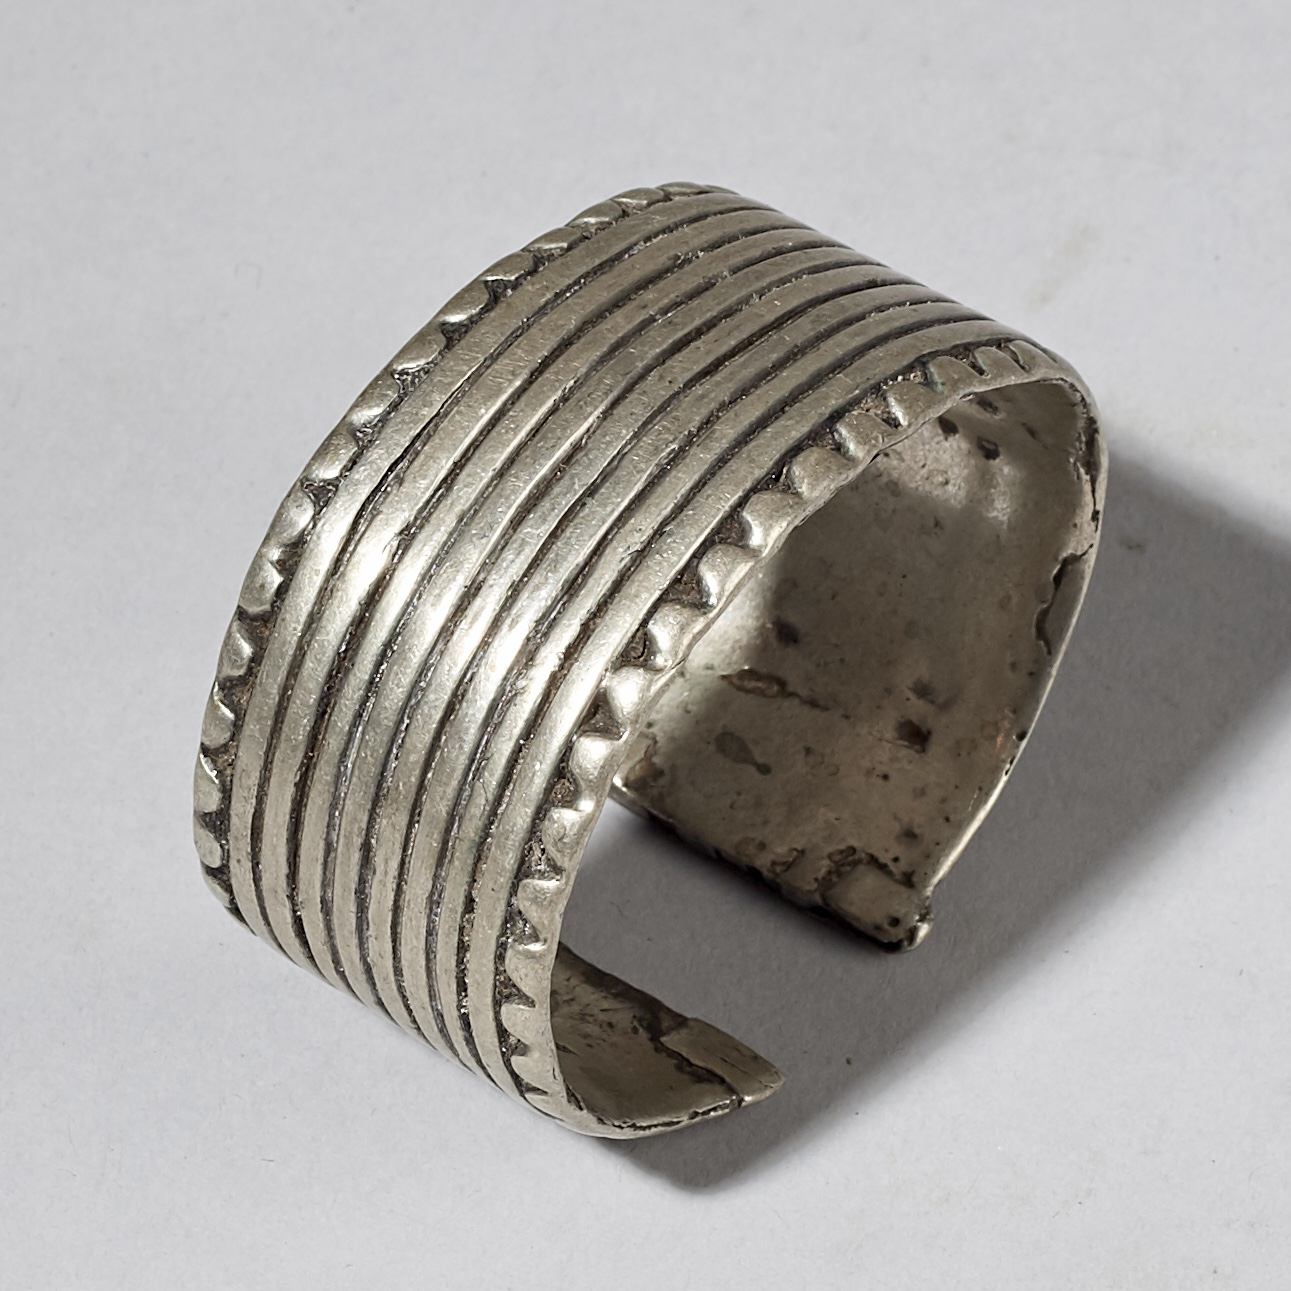 ( SOLD - LY ) A THICK SILVER CUFF FROM THE JIMA REGION OF ETHIOPIA ( No 3052 )